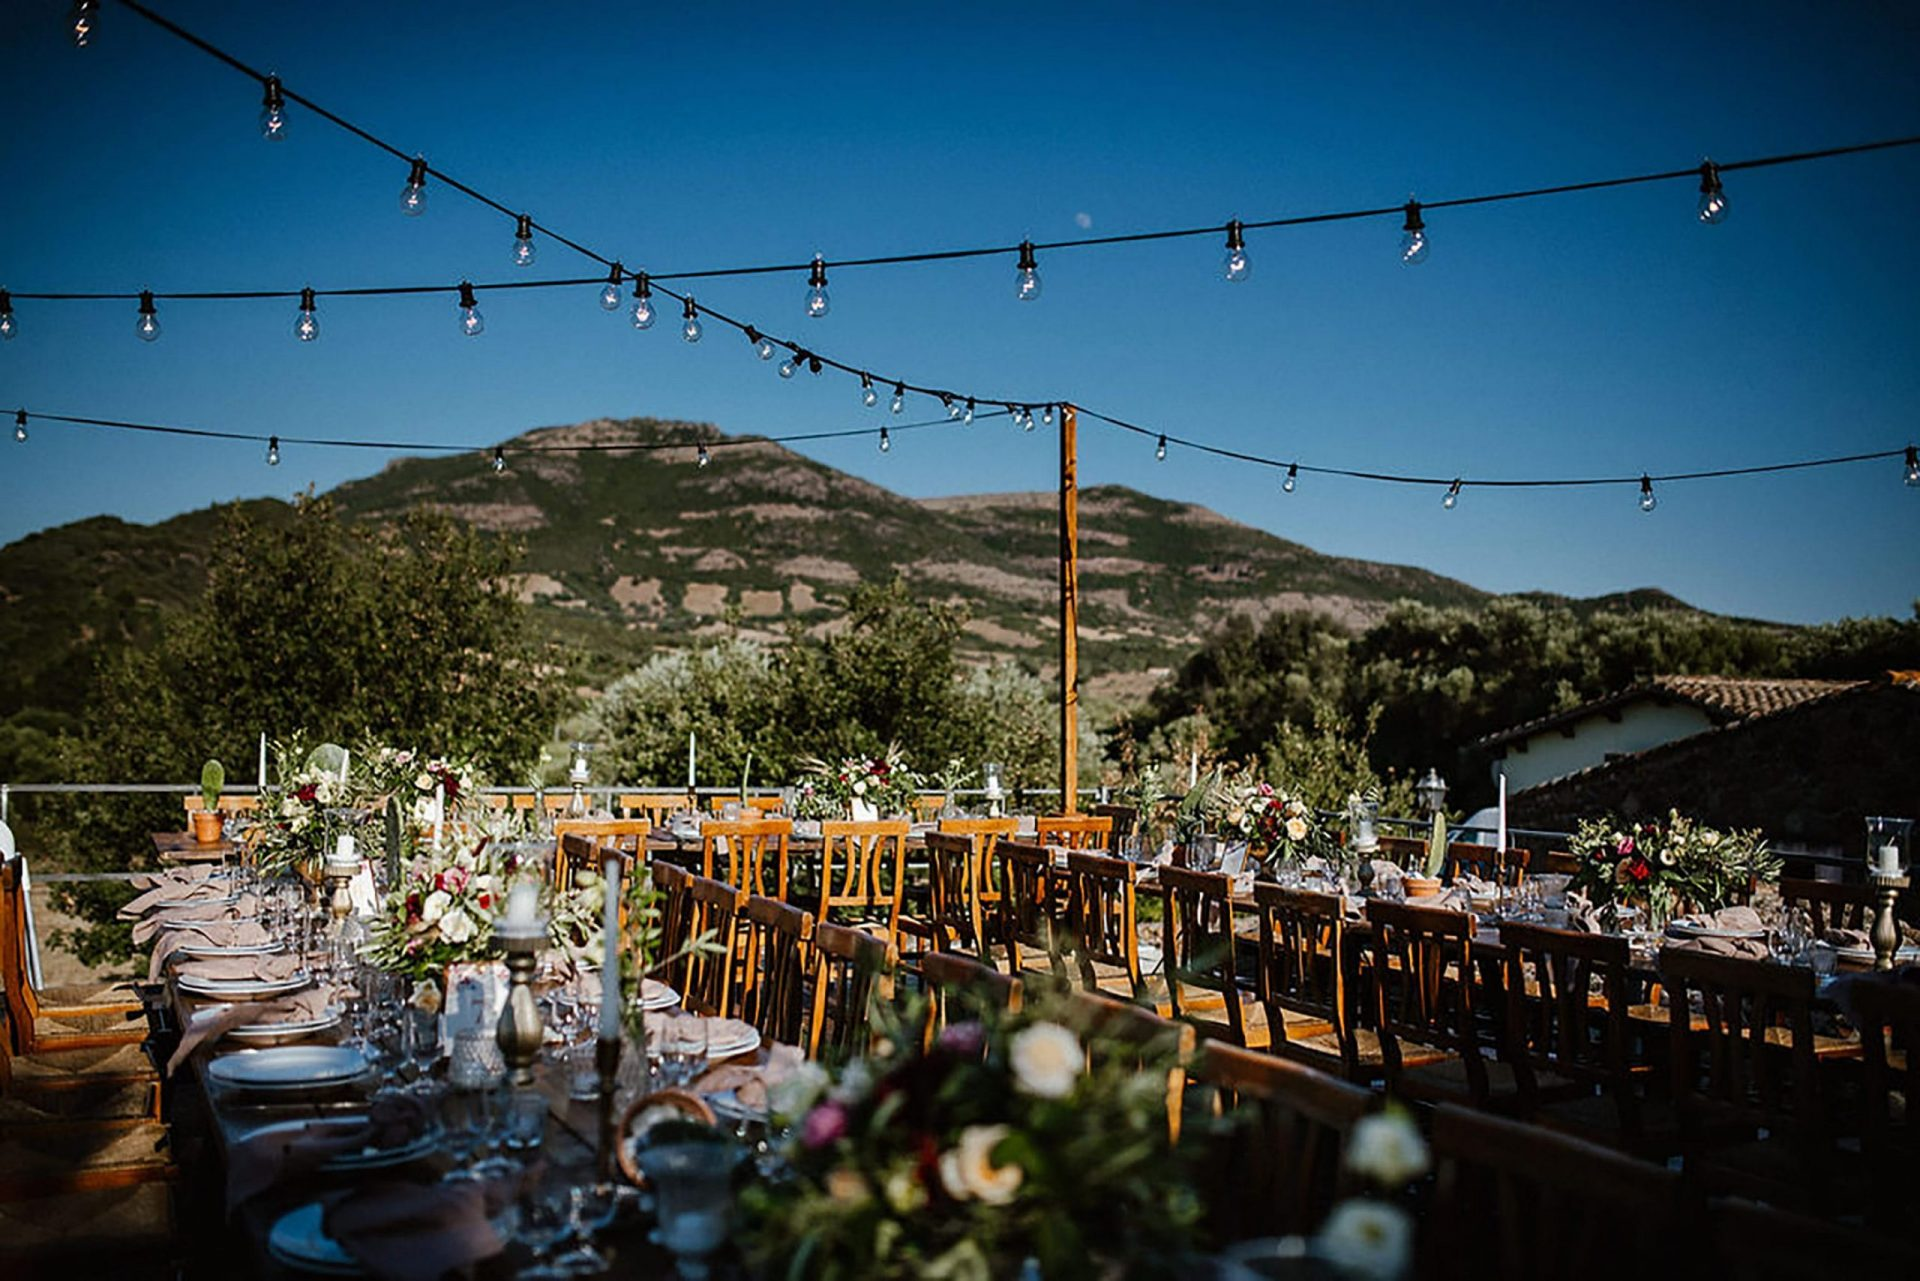 Marianna & Matteo, country inspired wedding reception